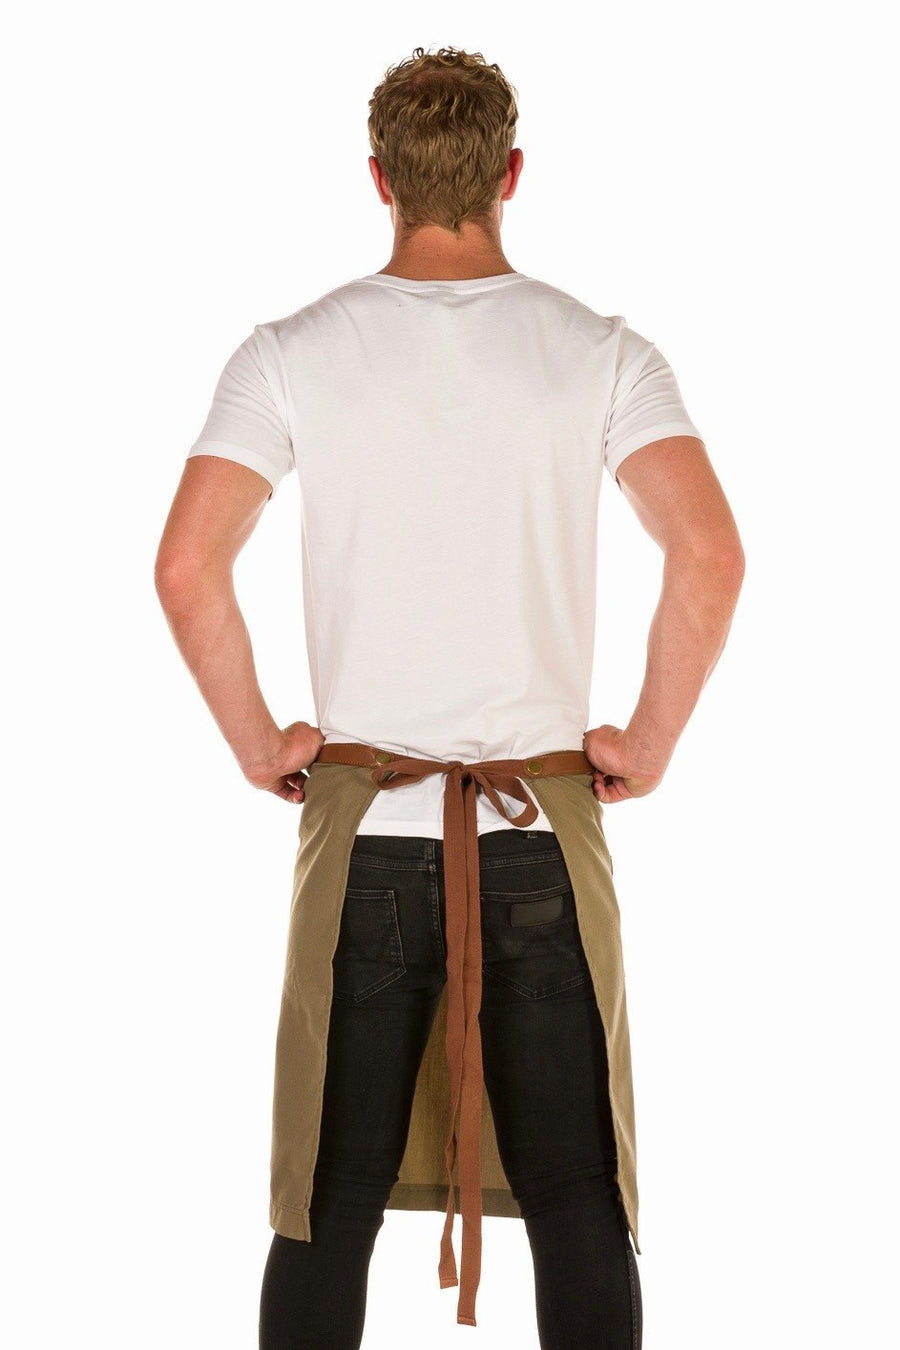 ARCHER Waist Apron with PU Leather studded strap - CARAMEL